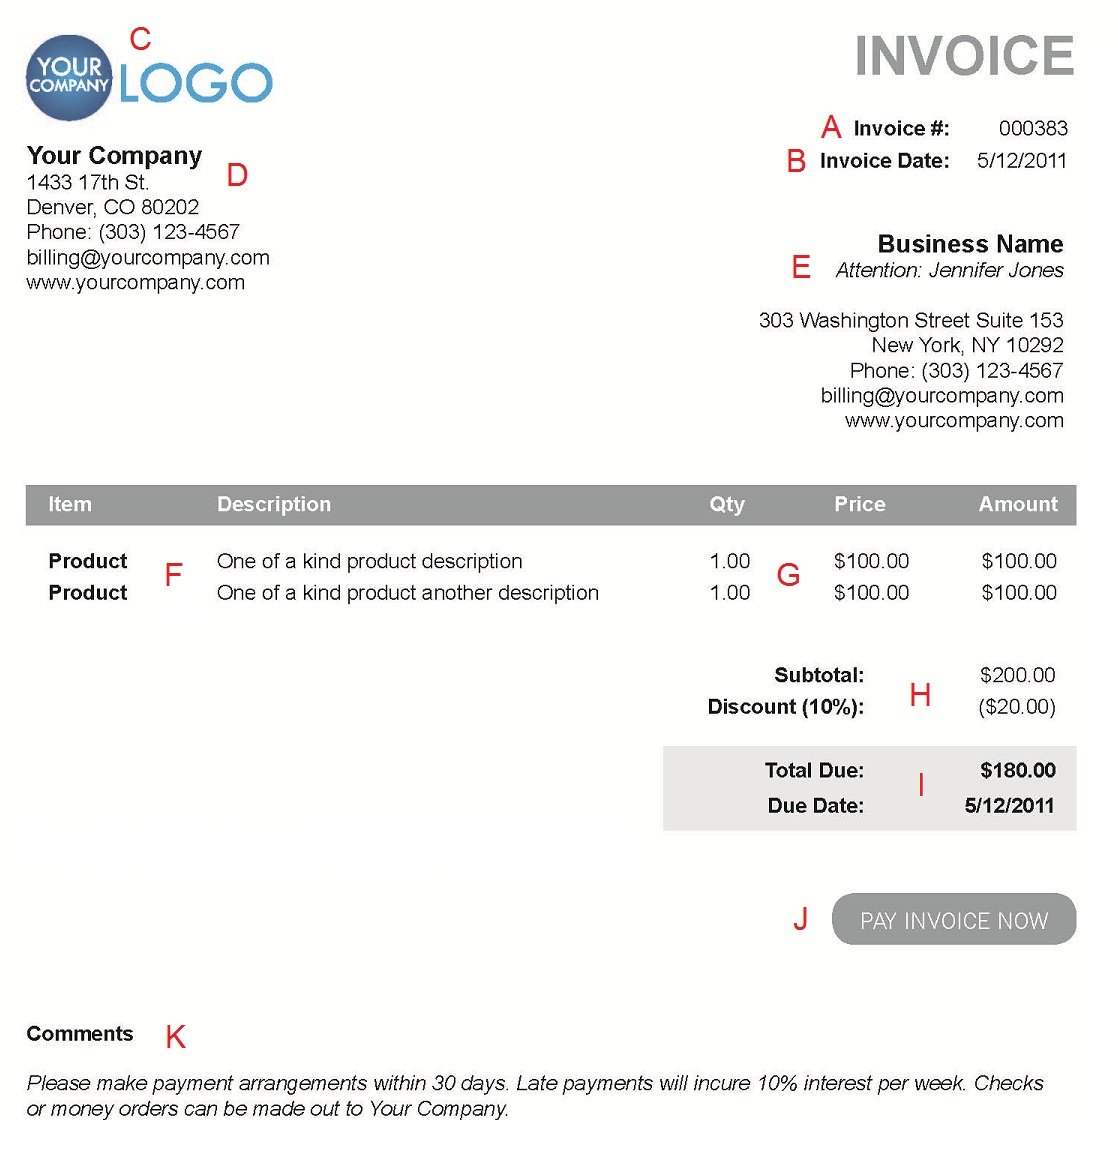 Texasgardeningus  Fascinating The  Different Sections Of An Electronic Payment Invoice With Handsome A  With Breathtaking Invoice Costs Also Free Invoices Uk In Addition Invoice Billing Software Free Download Full Version And Invoicing Made Simple As Well As What Is An Invoice Payment Additionally Tax Invoices Requirements From Paysimplecom With Texasgardeningus  Handsome The  Different Sections Of An Electronic Payment Invoice With Breathtaking A  And Fascinating Invoice Costs Also Free Invoices Uk In Addition Invoice Billing Software Free Download Full Version From Paysimplecom